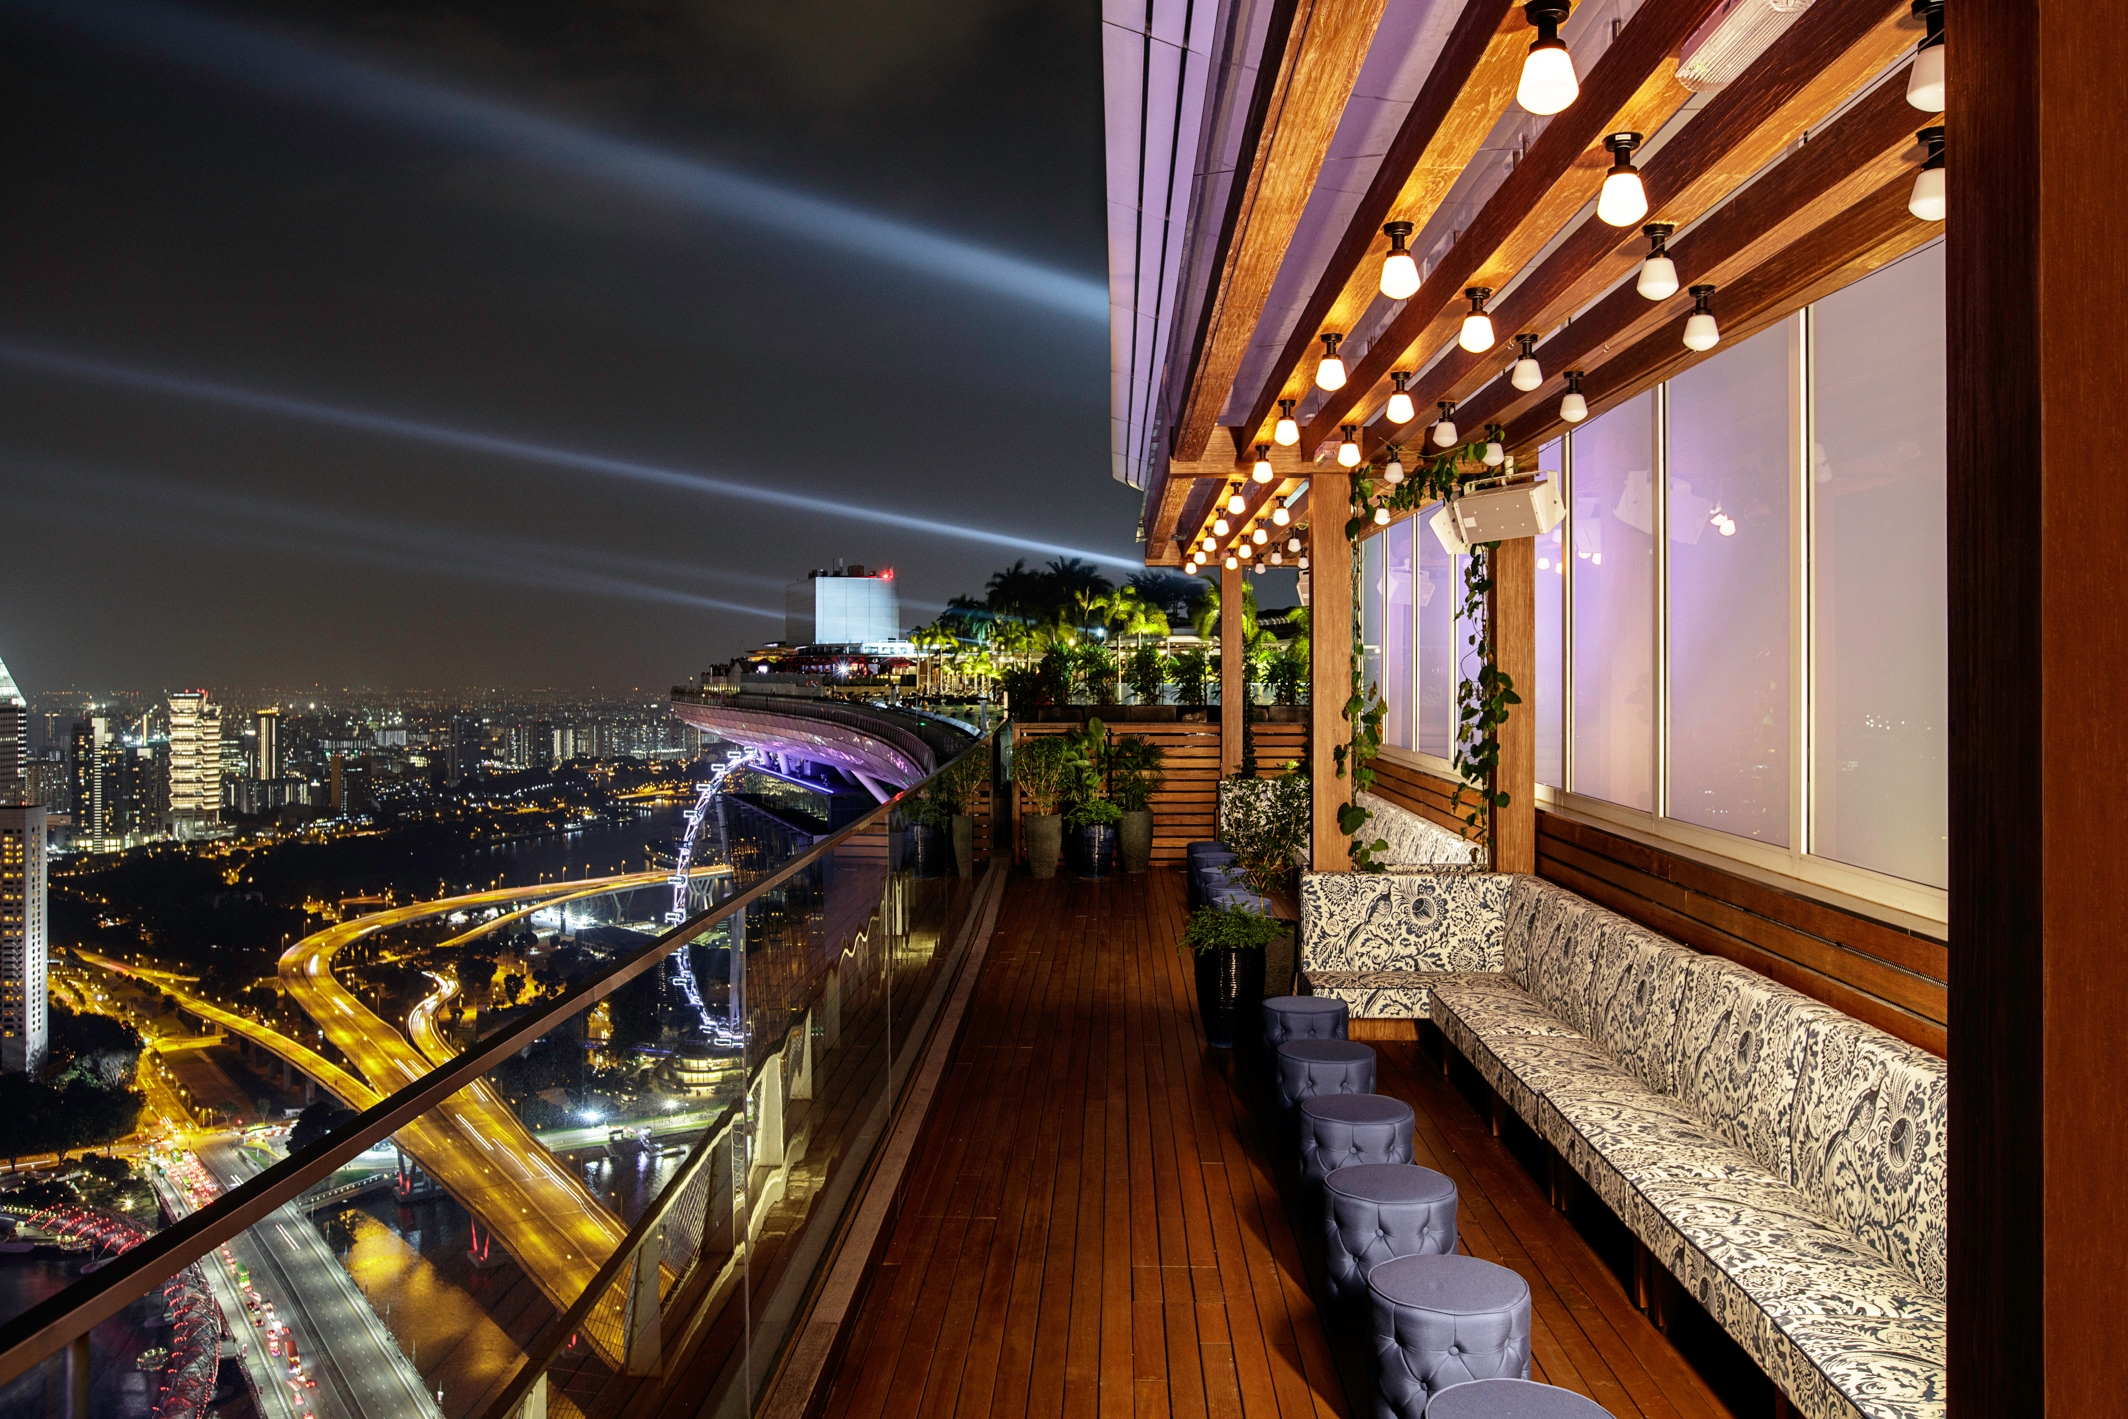 Meals by LAVO Italian Restaurant & Rooftop Bar for hotel guests at Marina Bays Sands